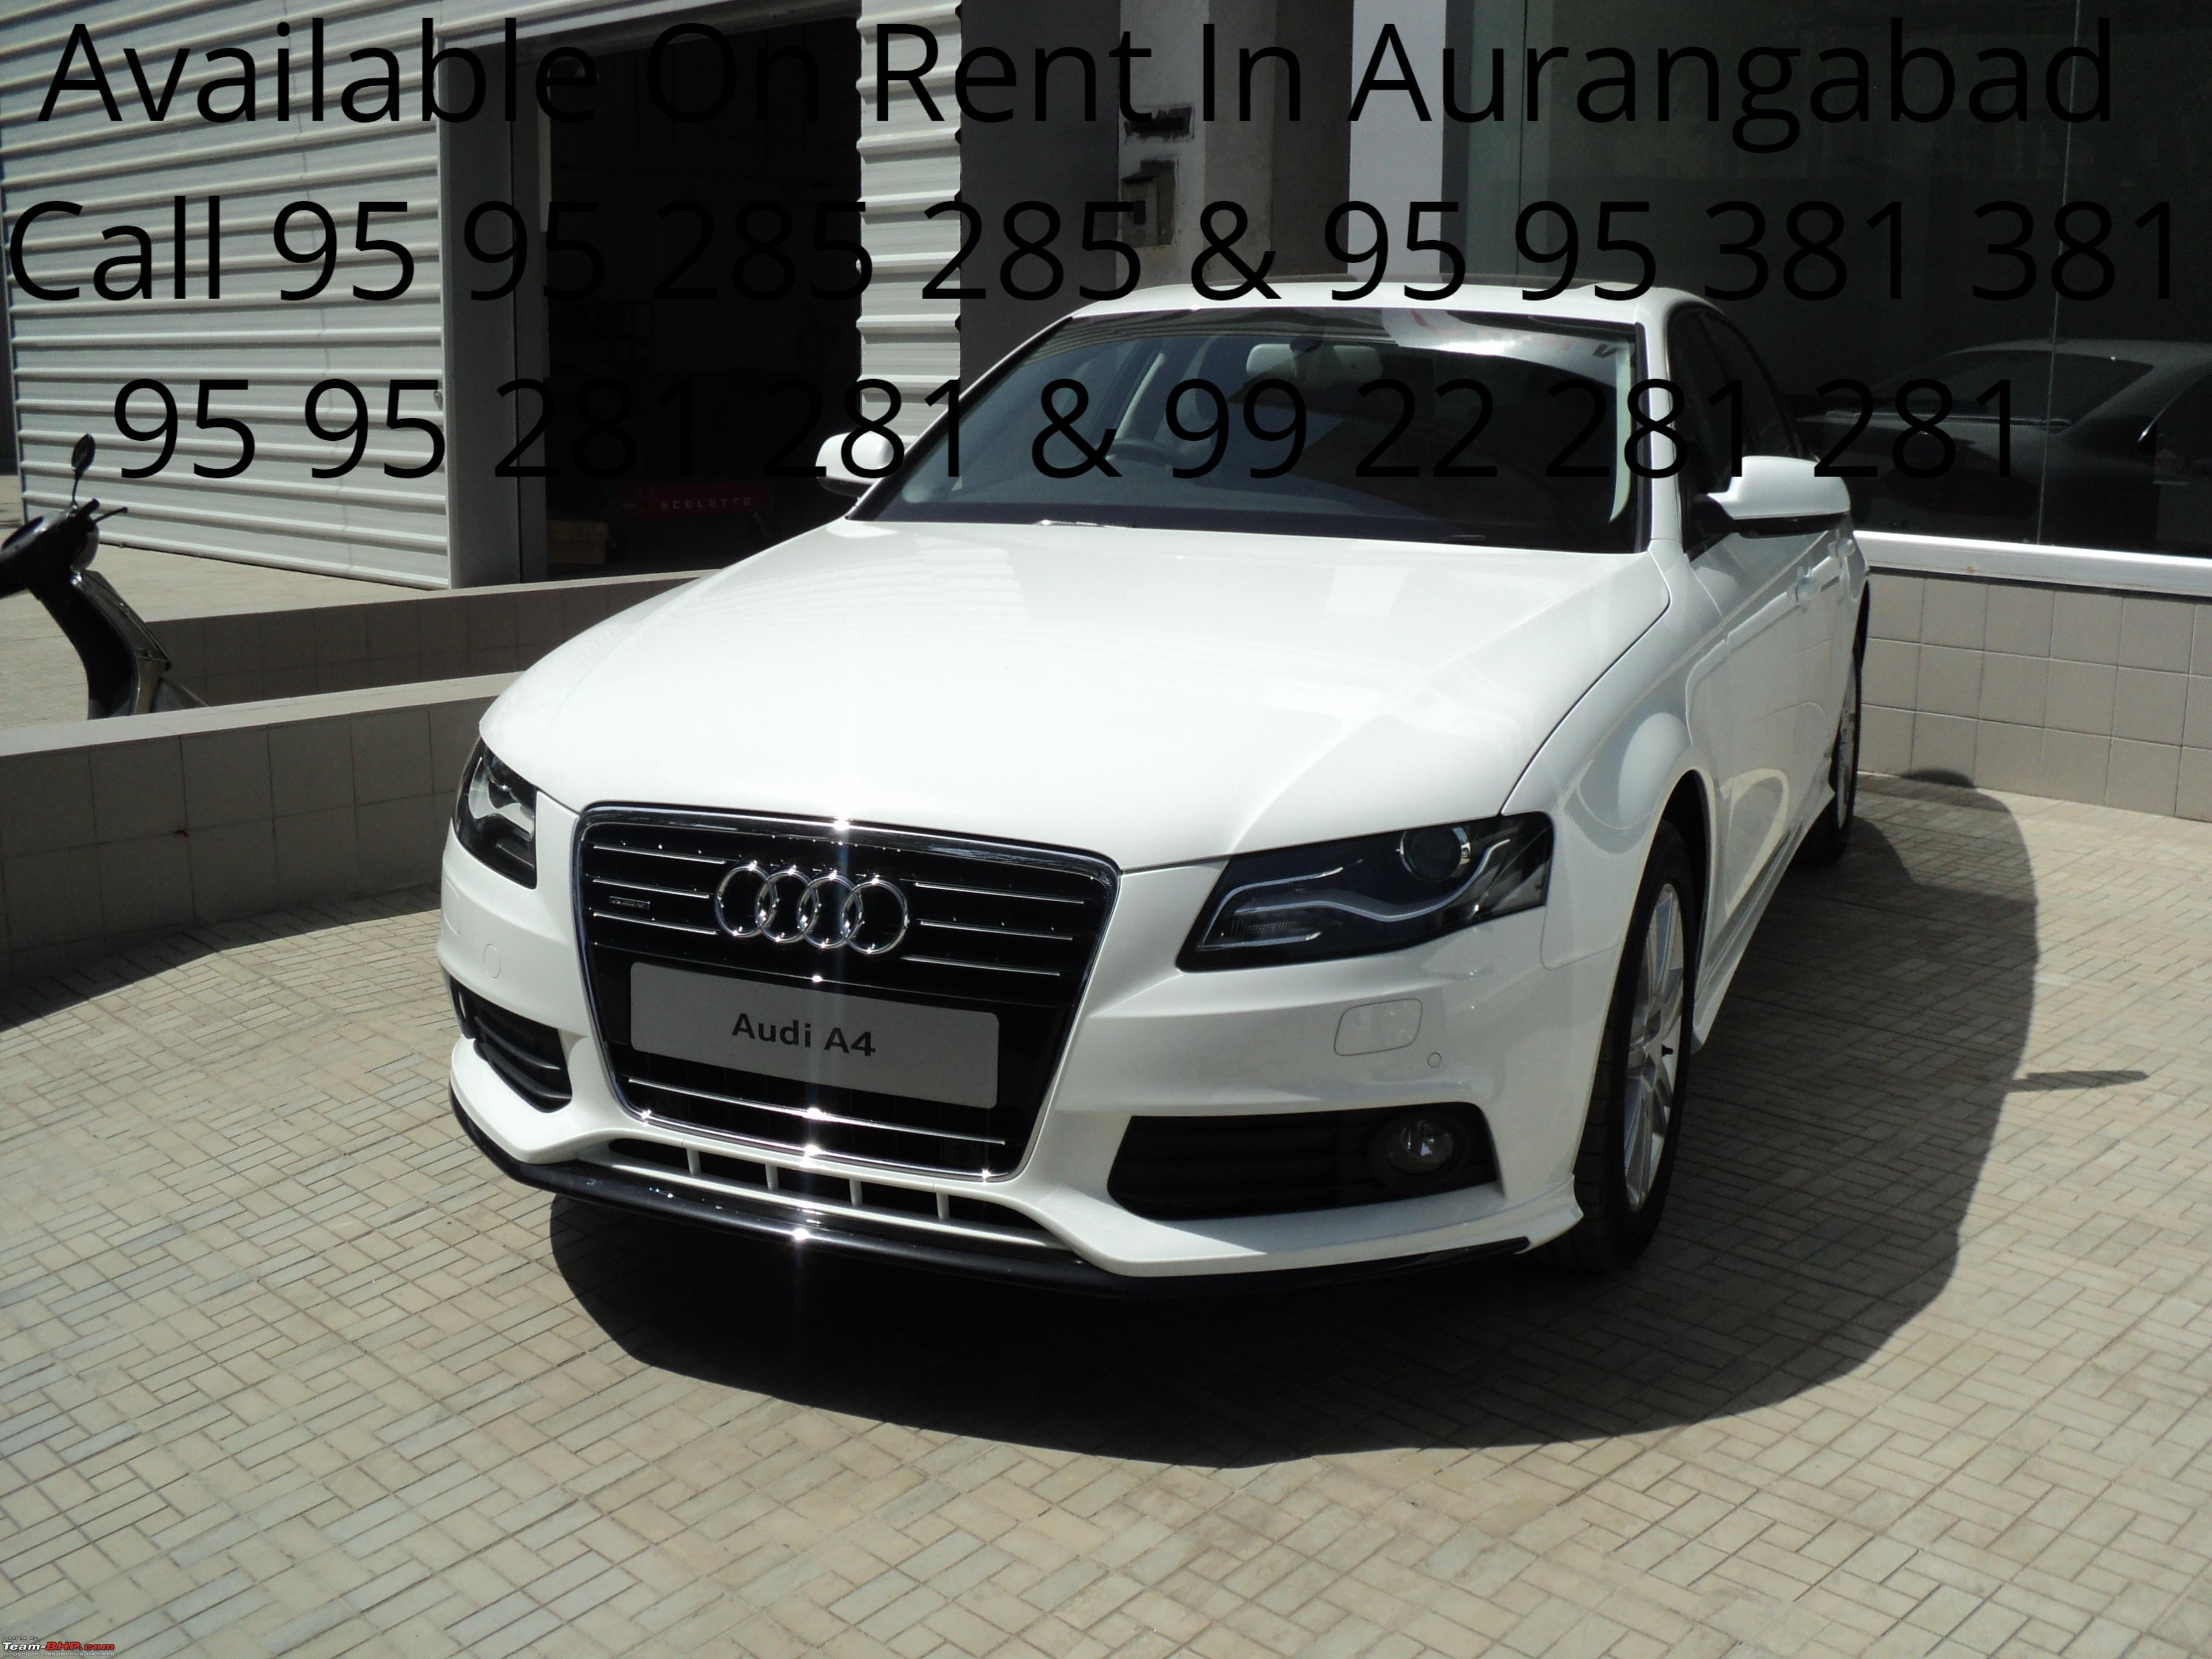 Aurangabad bmw mercedes audi jaguar car on hire rent Aurangabad Aurangabad Rent Hire wedding cars Aurangabad wedding car Aurangabad marriage